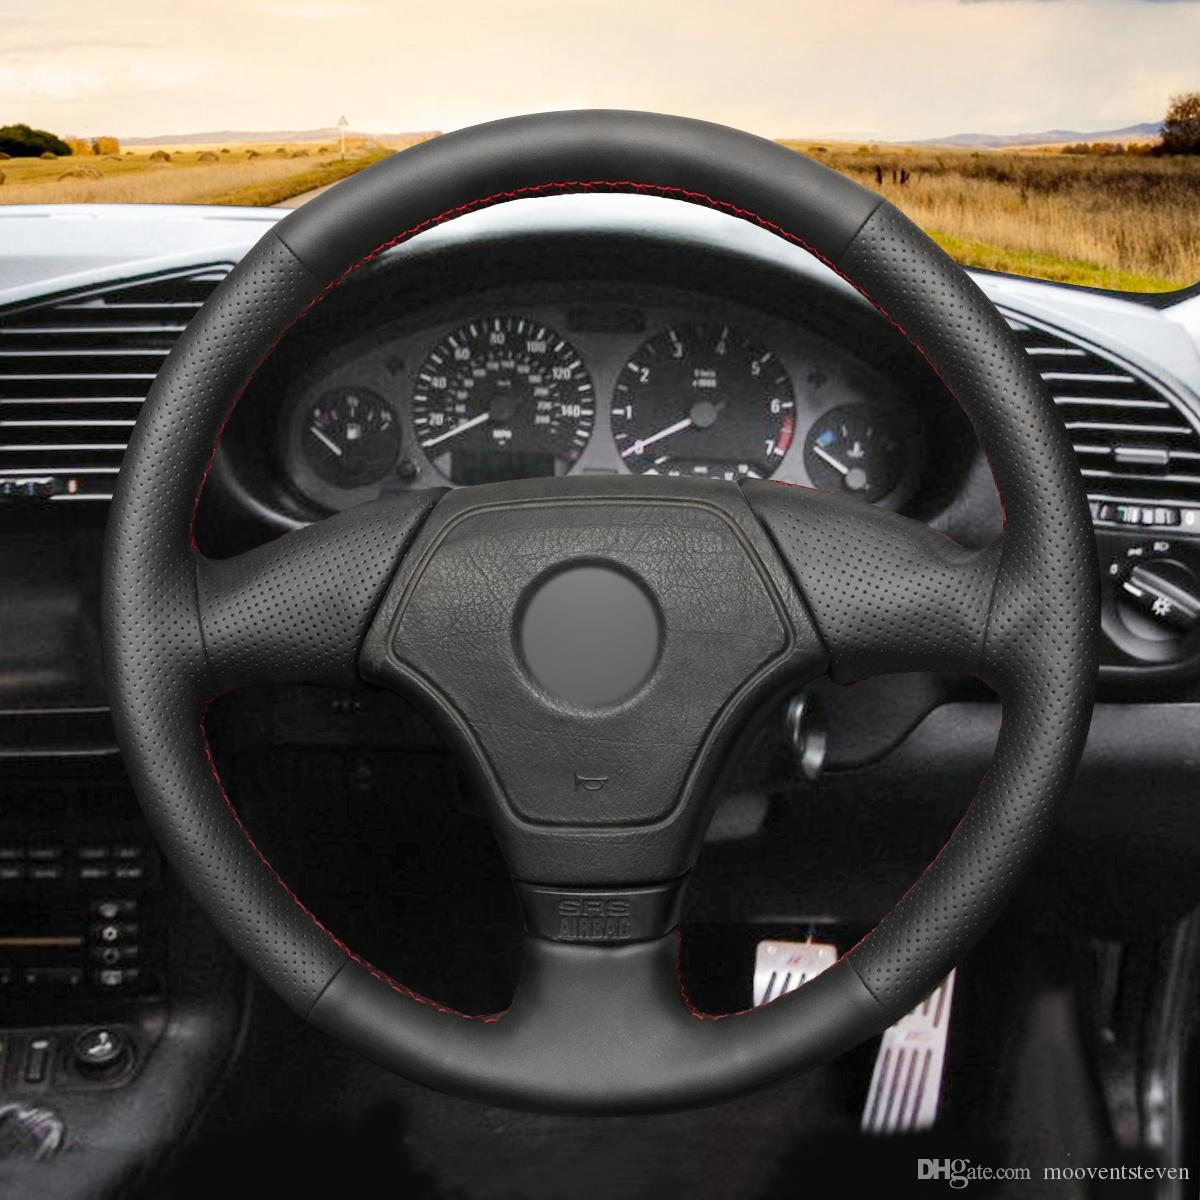 hight resolution of mewant hand stitched black artificial leather steering wheel cover wrap for bmw e36 e46 e39 without multi function button thin steering wheel cover thin